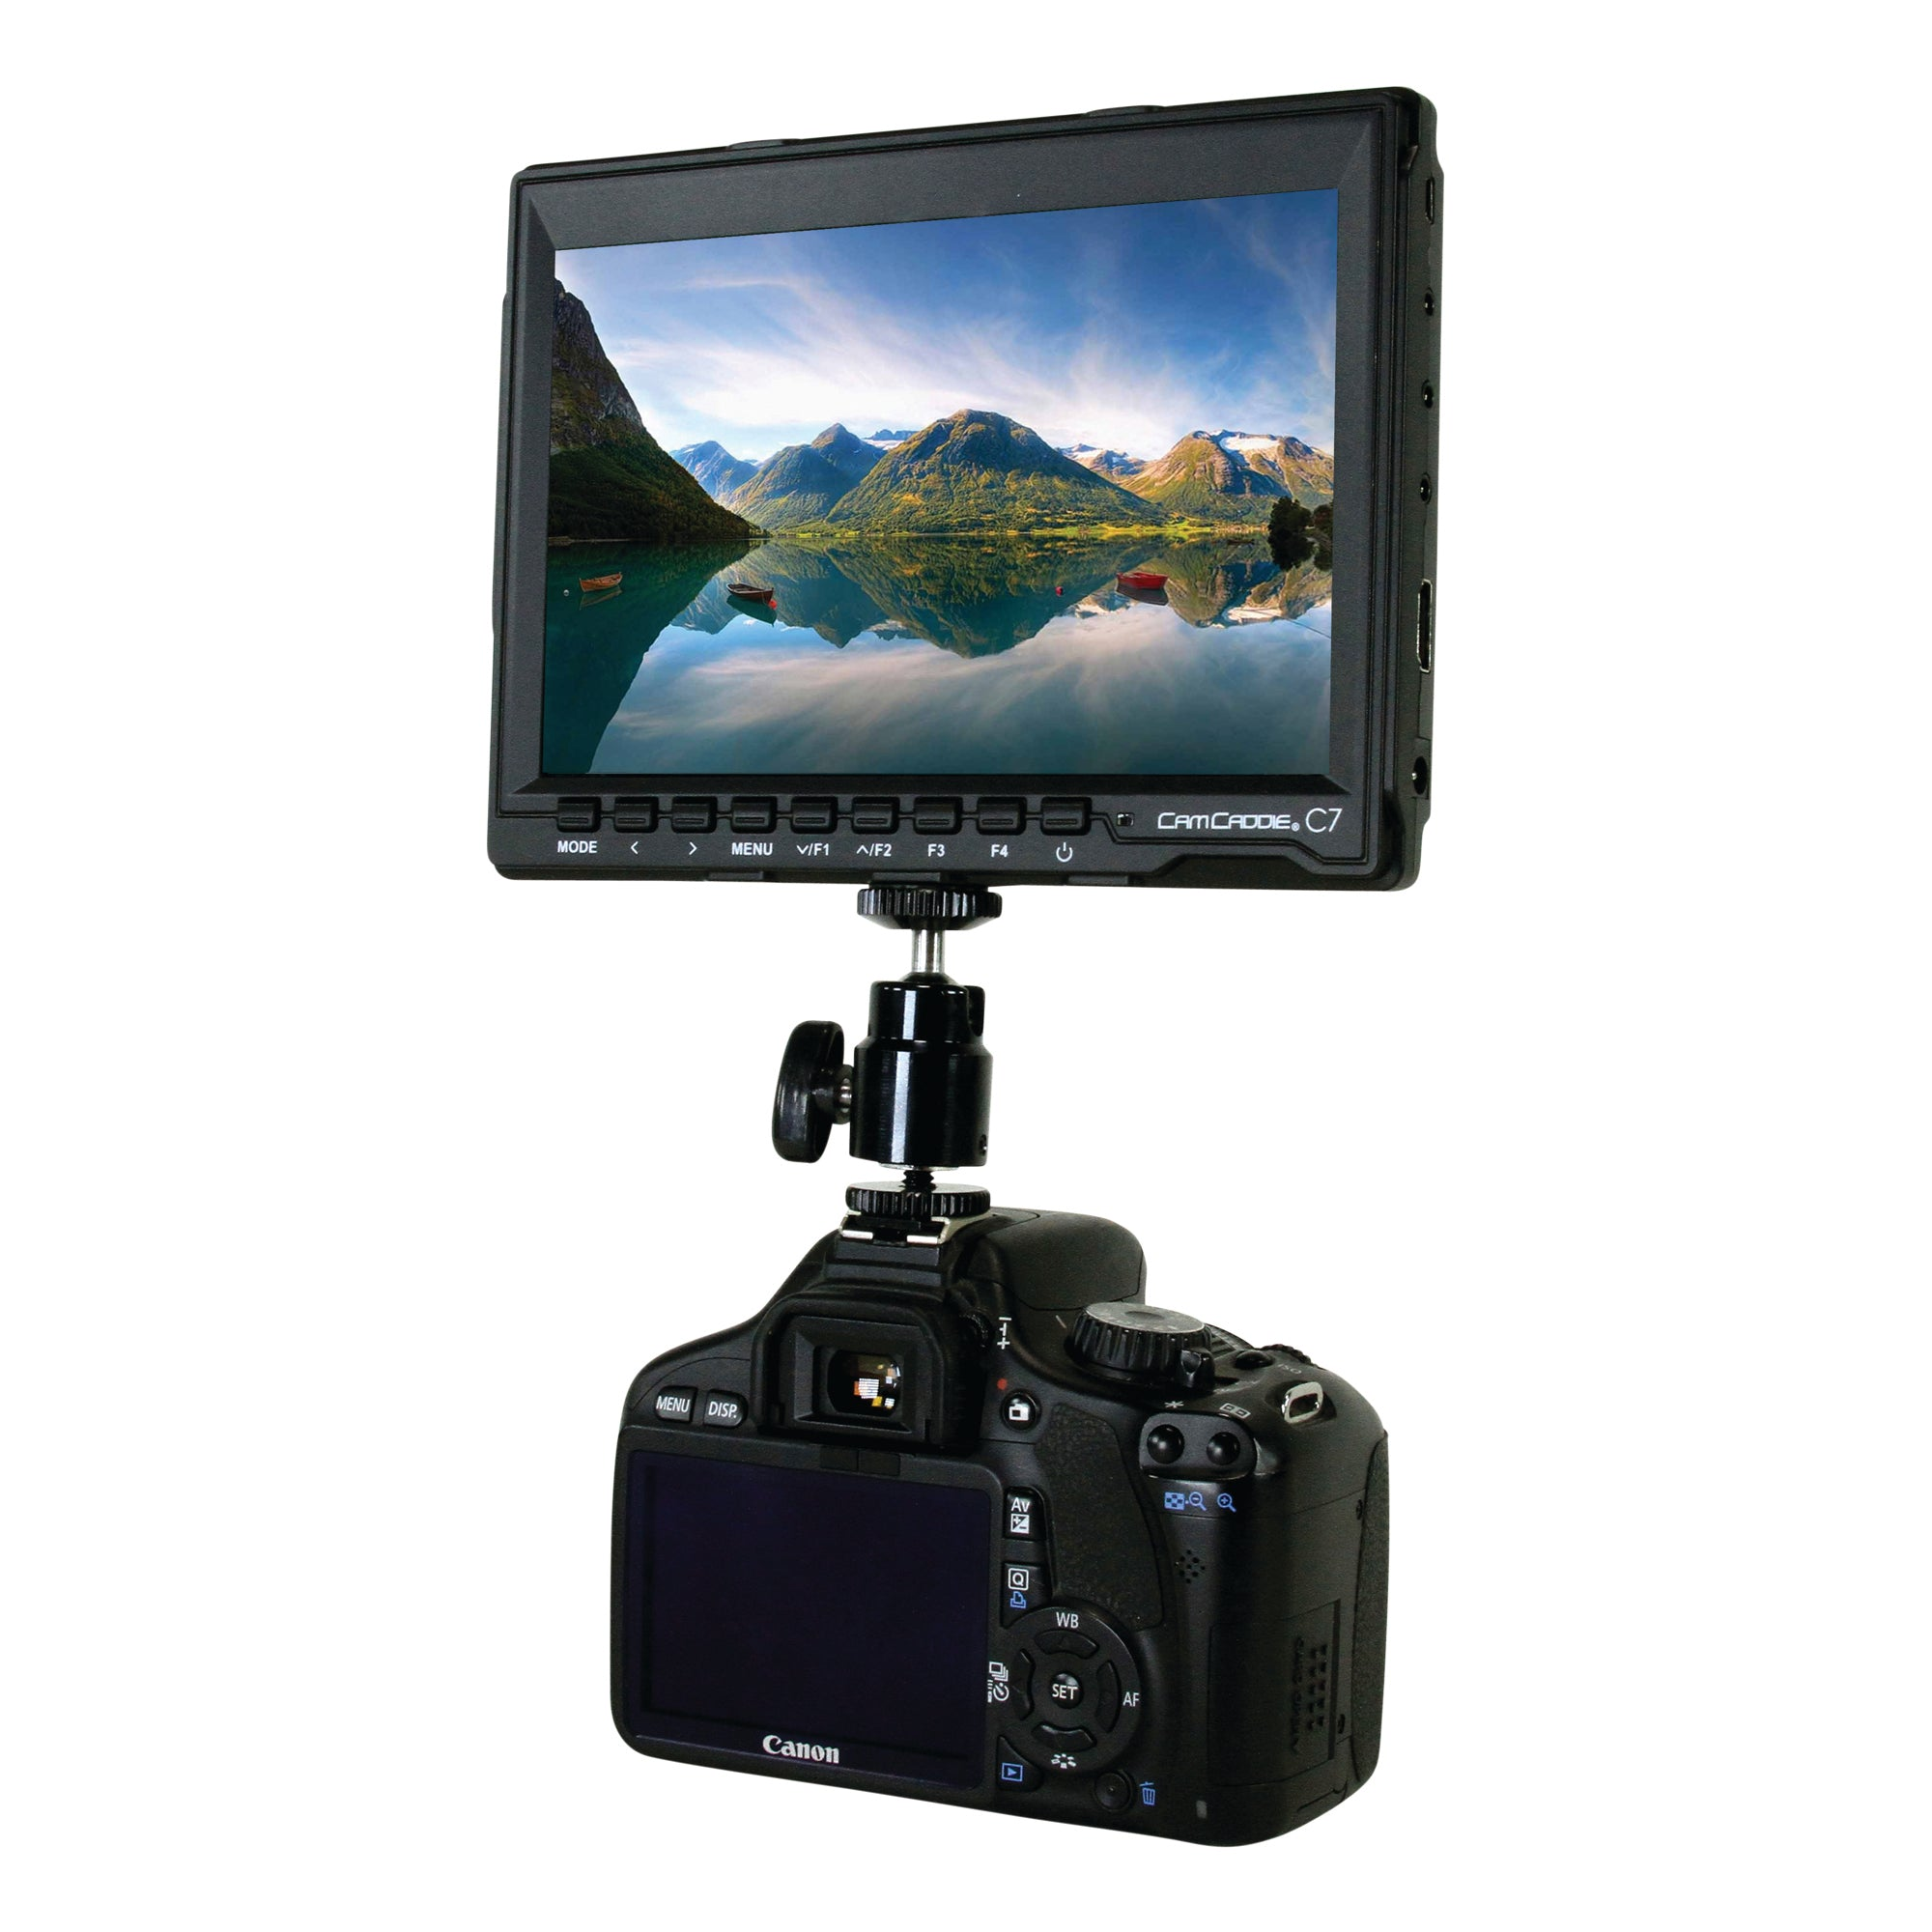 "Cam Caddie C7 7"" 1280 x 800 HD IPS Field Monitor + Canon LP-E6 Battery Plate - Cam Caddie - The Original Universal Stabilizing Camera Handle"